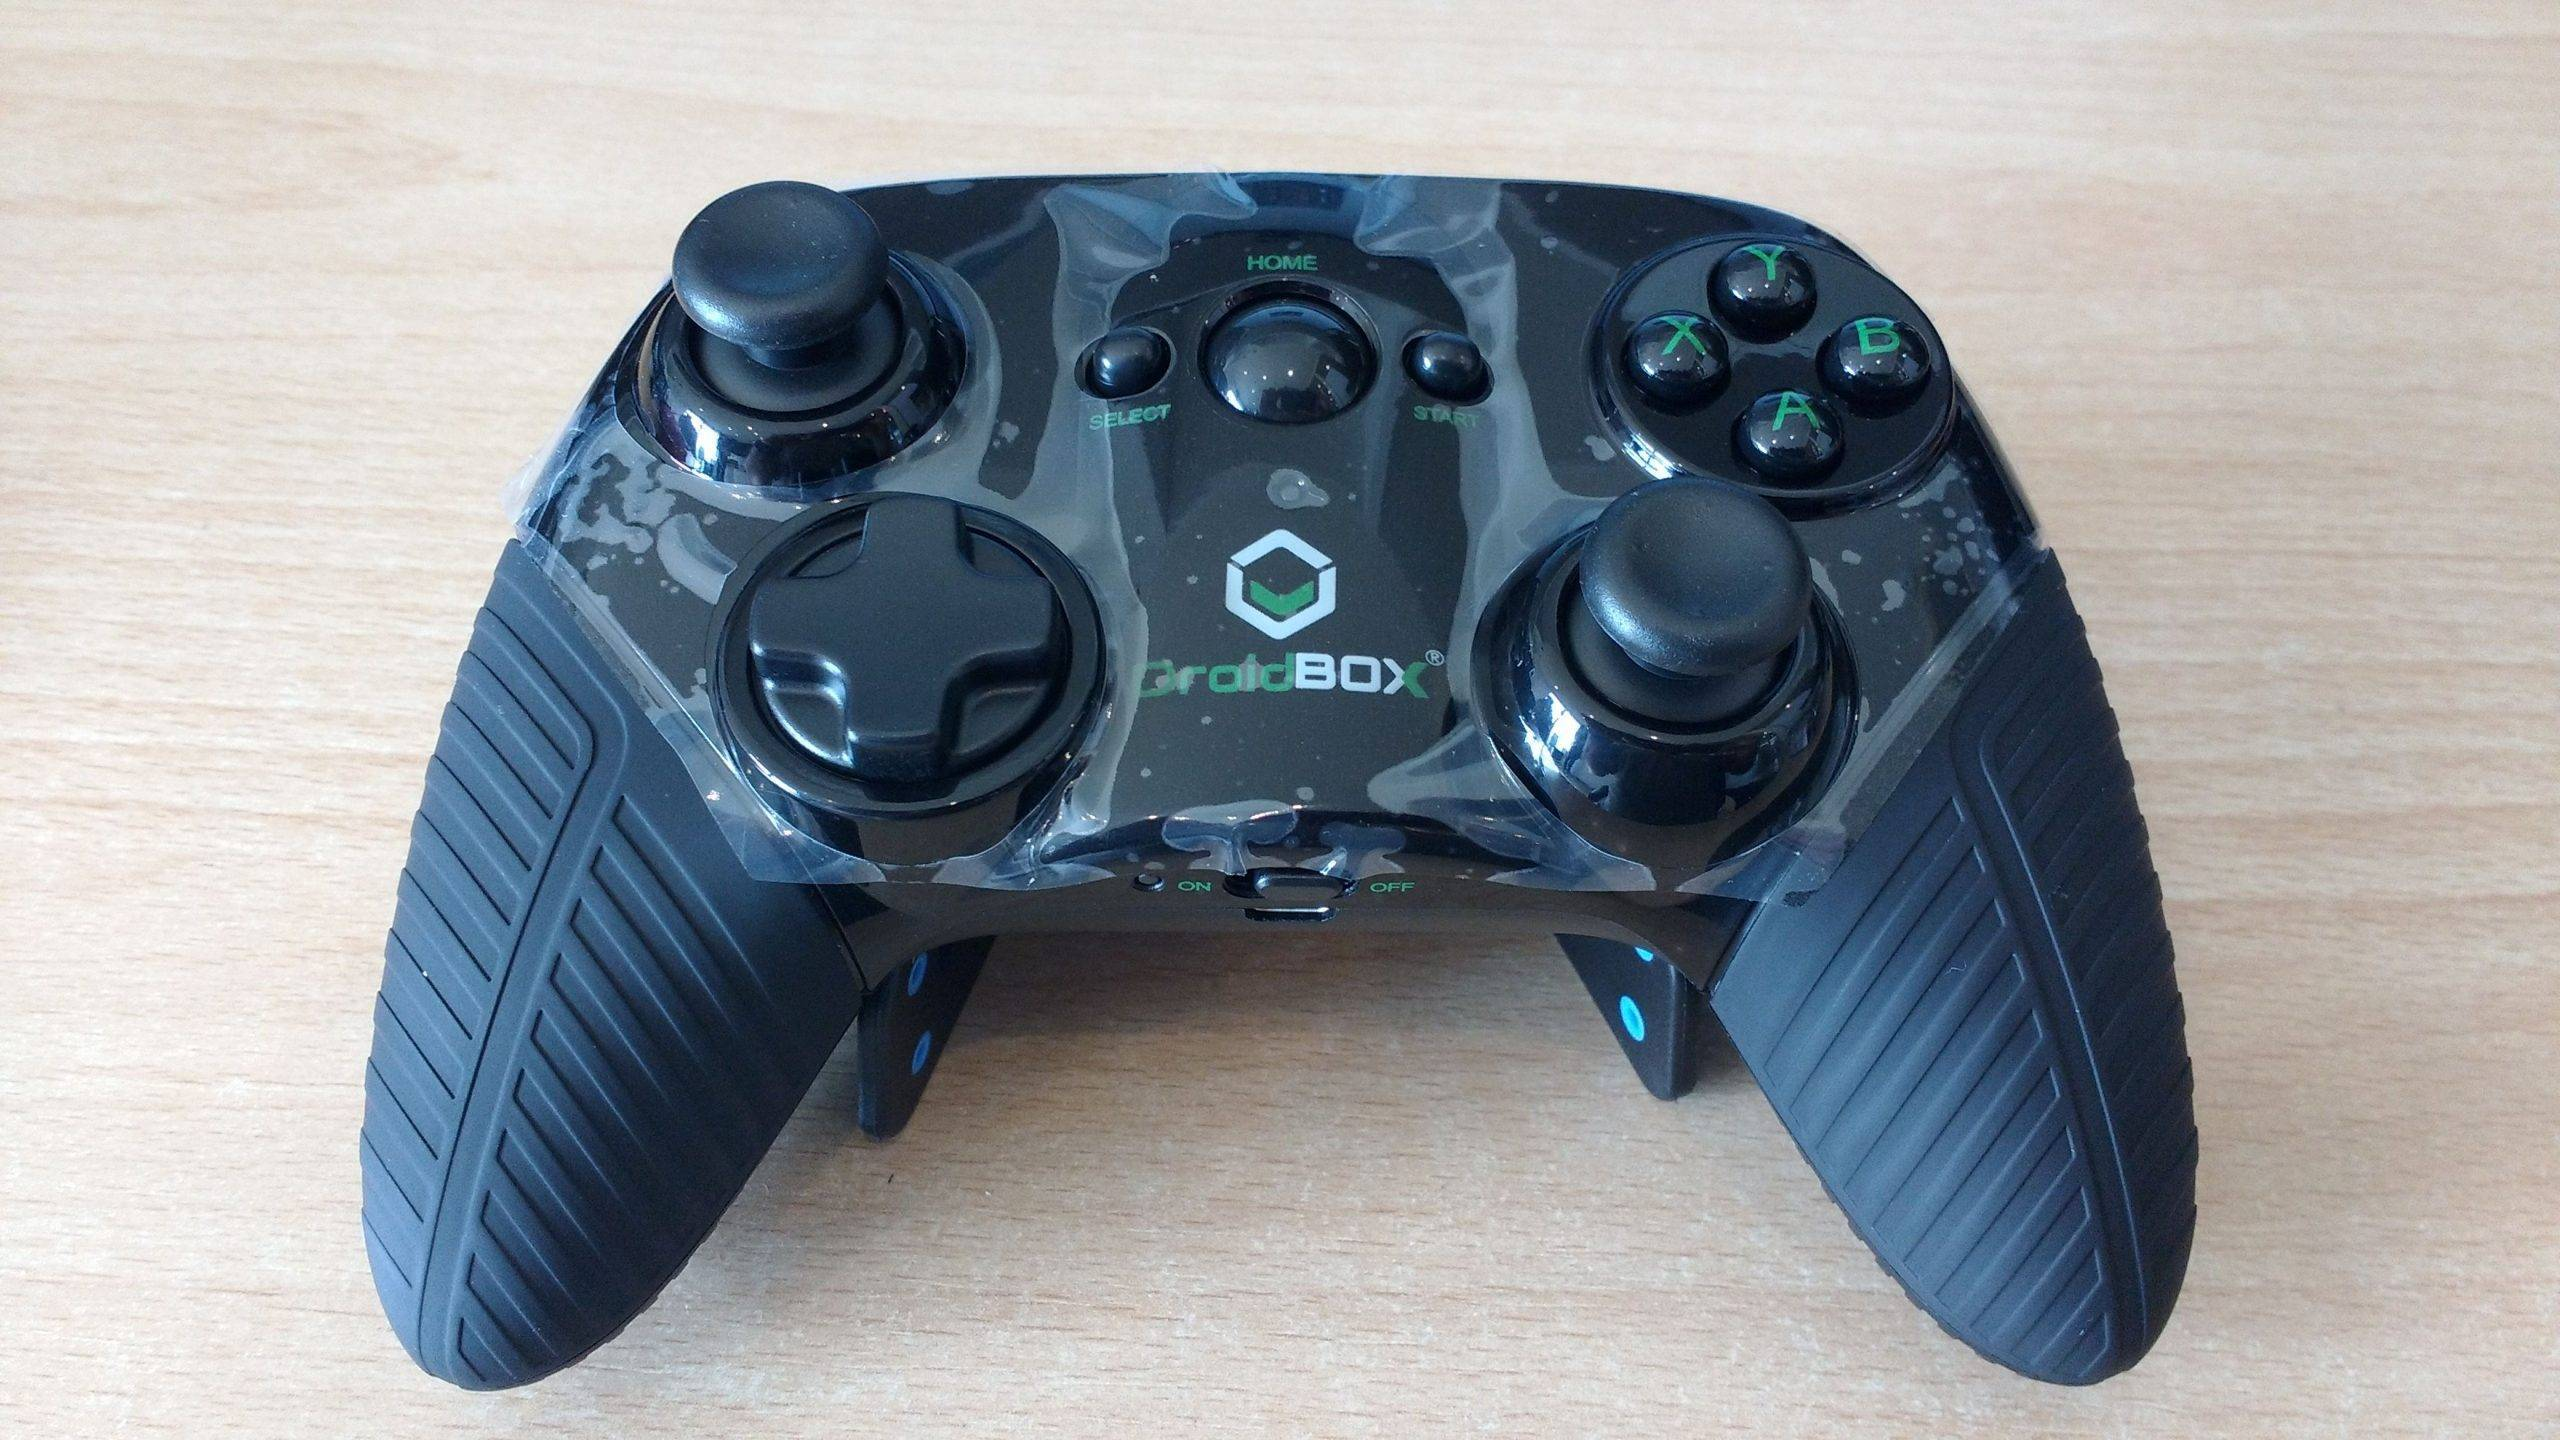 Play Gamepad review photo